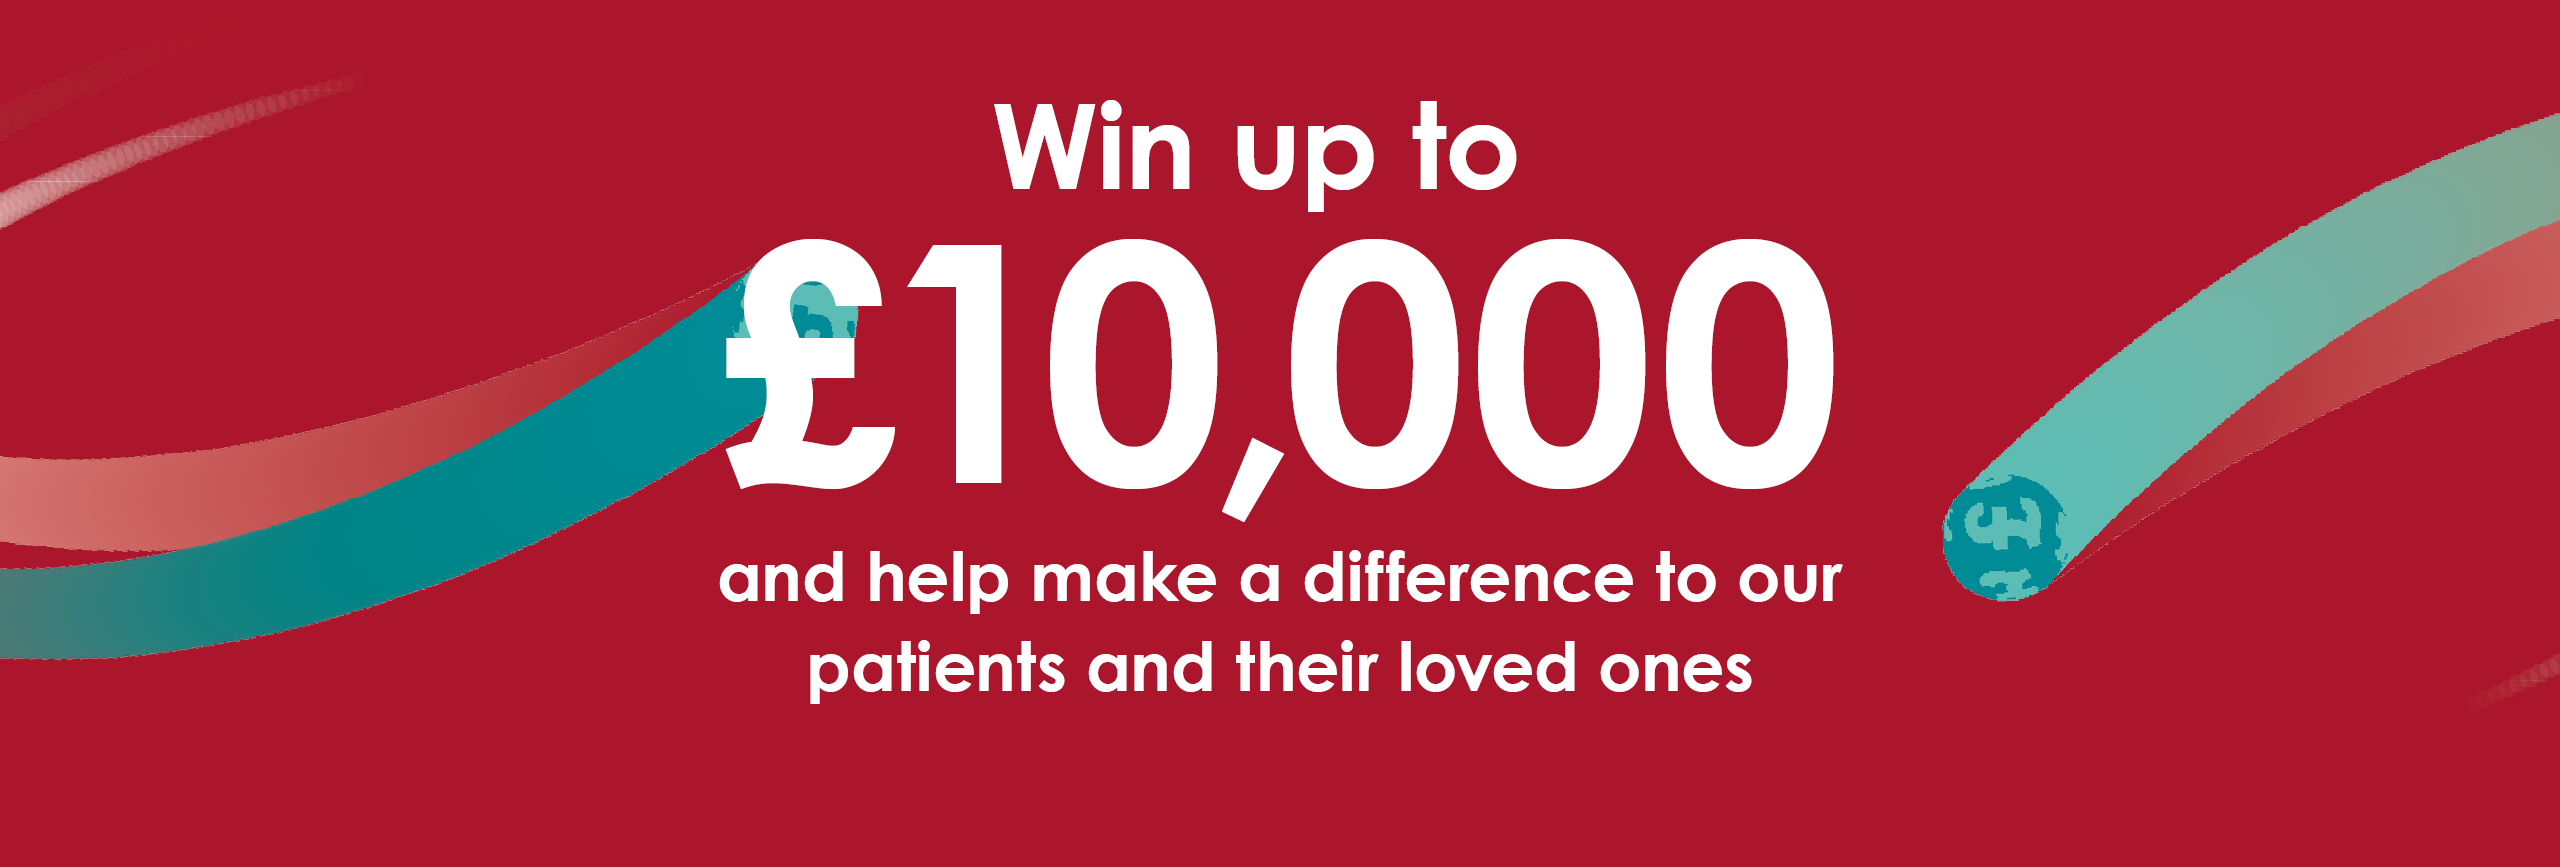 The Myton Hospices - Lottery Flex Slider - Warwick Coventry Rugby Leamington Spa Hospice